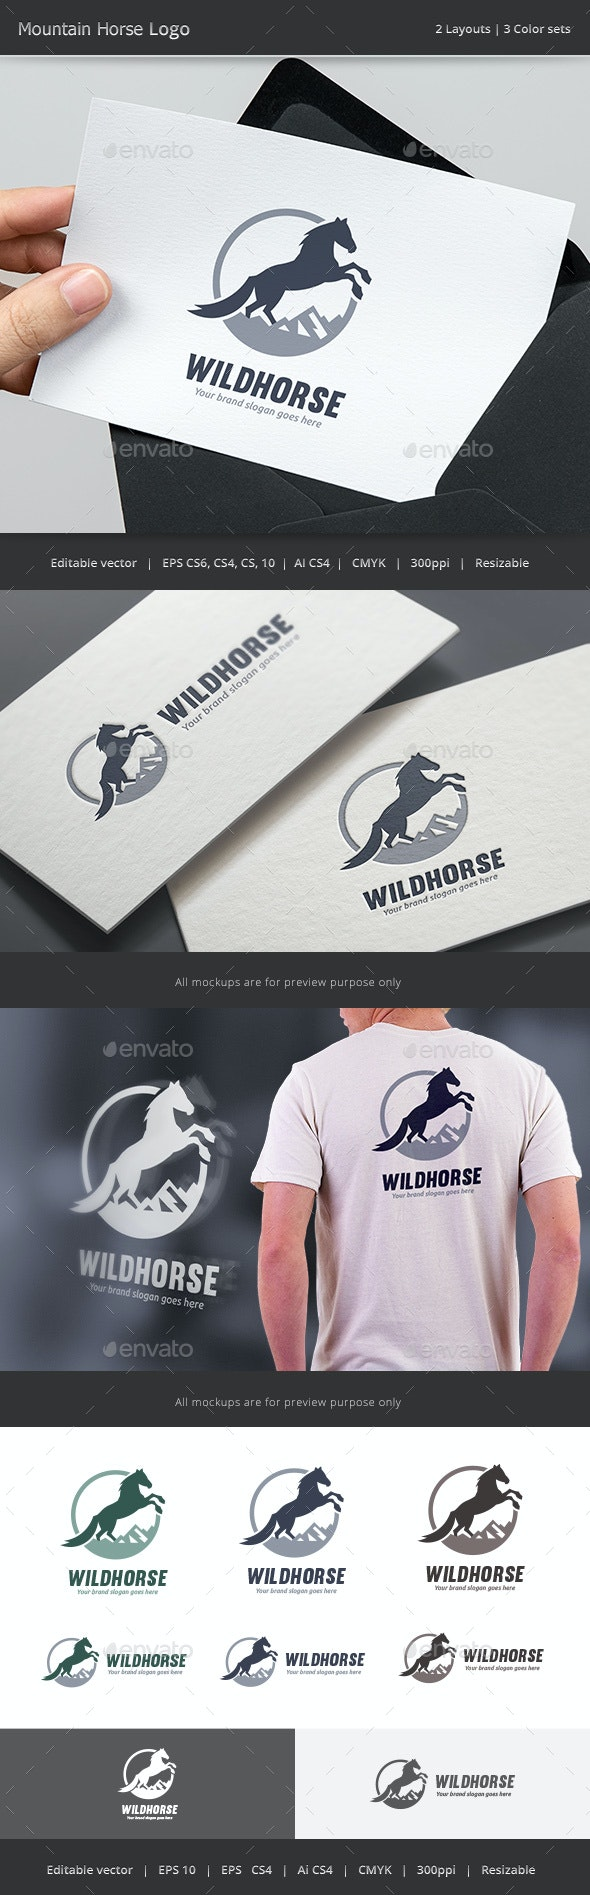 Mountain Horse Logo - Animals Logo Templates